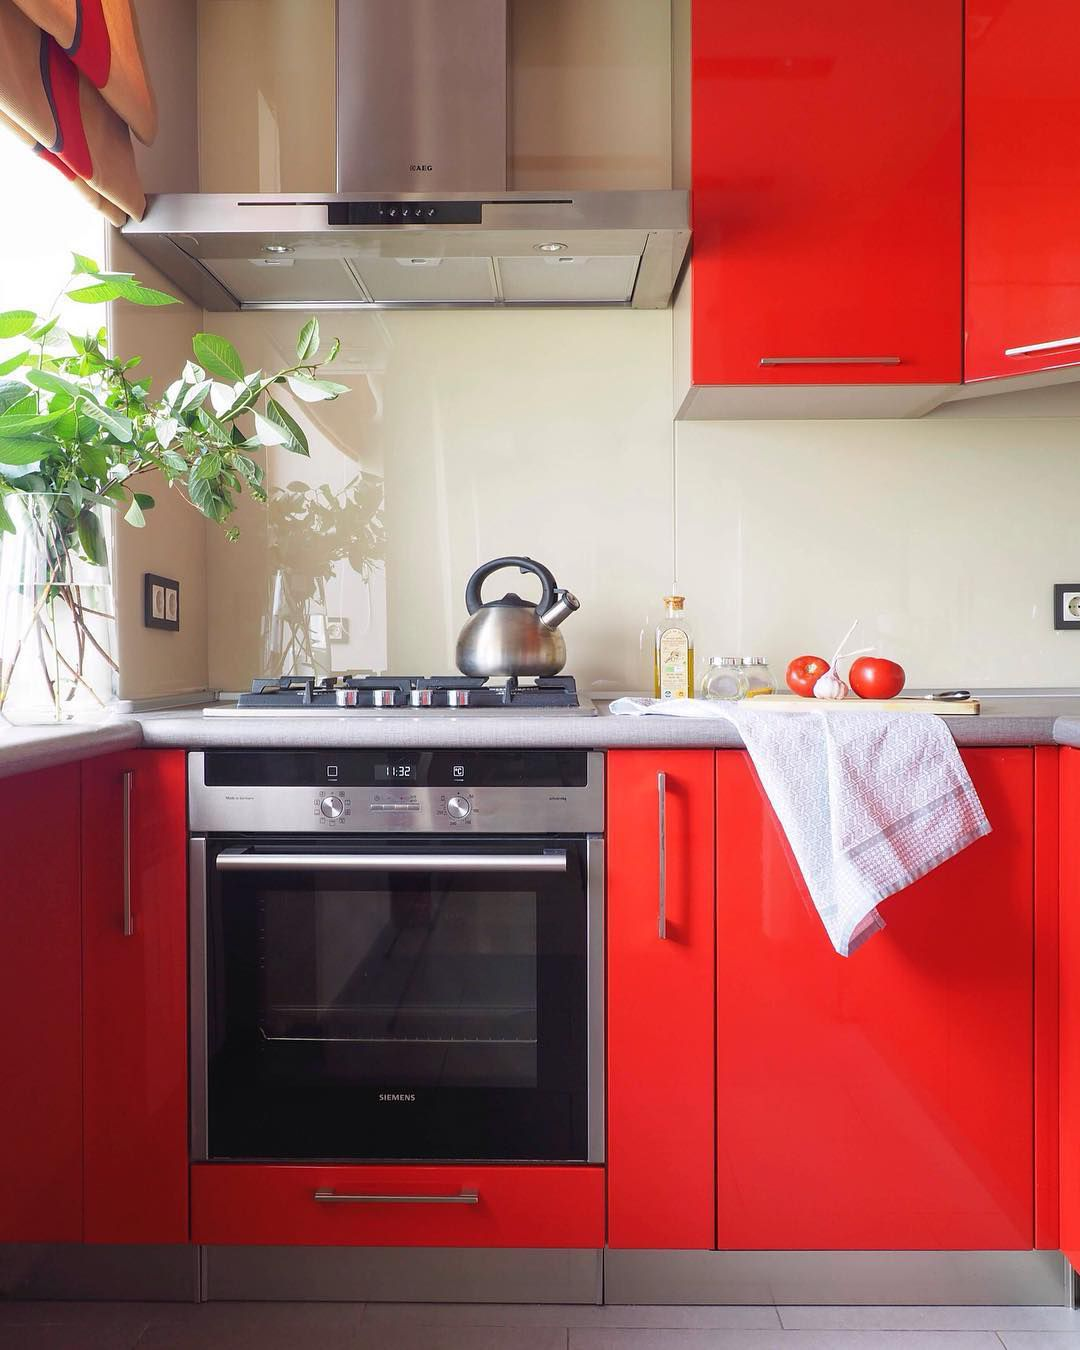 Shiny bright red kitchen cabinets